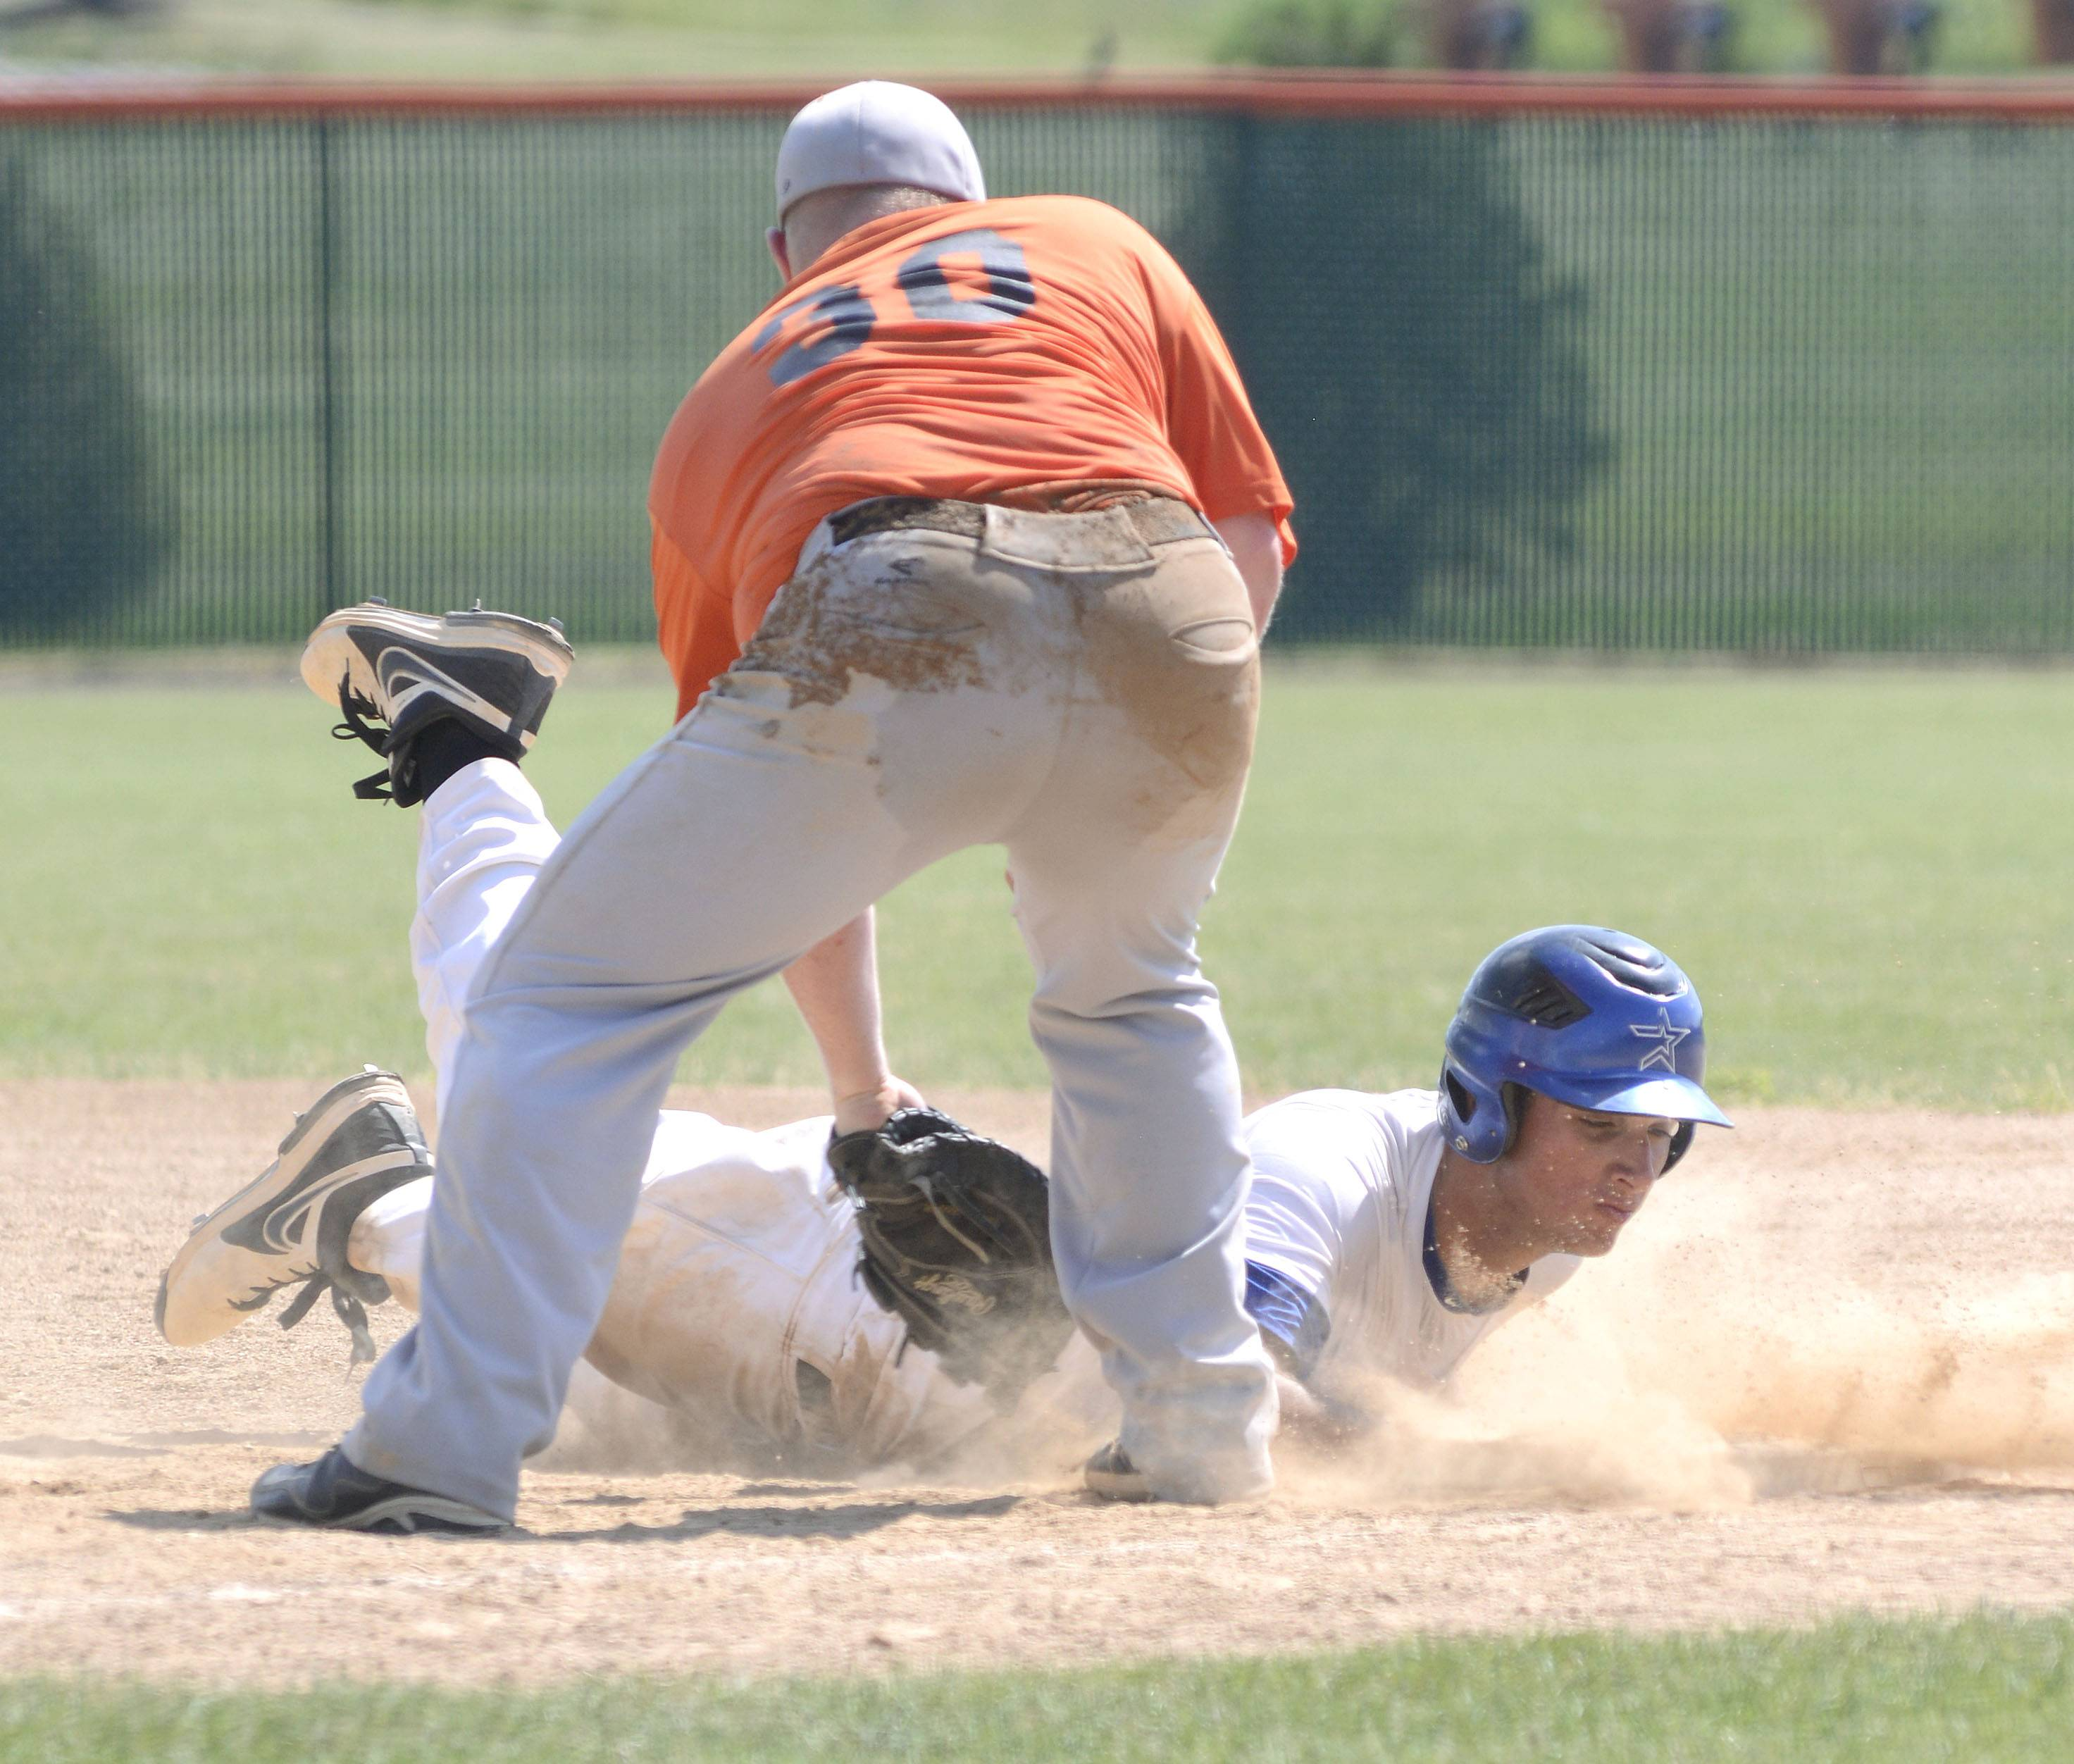 St. Charles North's Joe Kuczek, pictured diving back into first base during a summer game against St. Charles East, was one of three North Stars to make the all-tournament team on their trip last week to Tennessee.